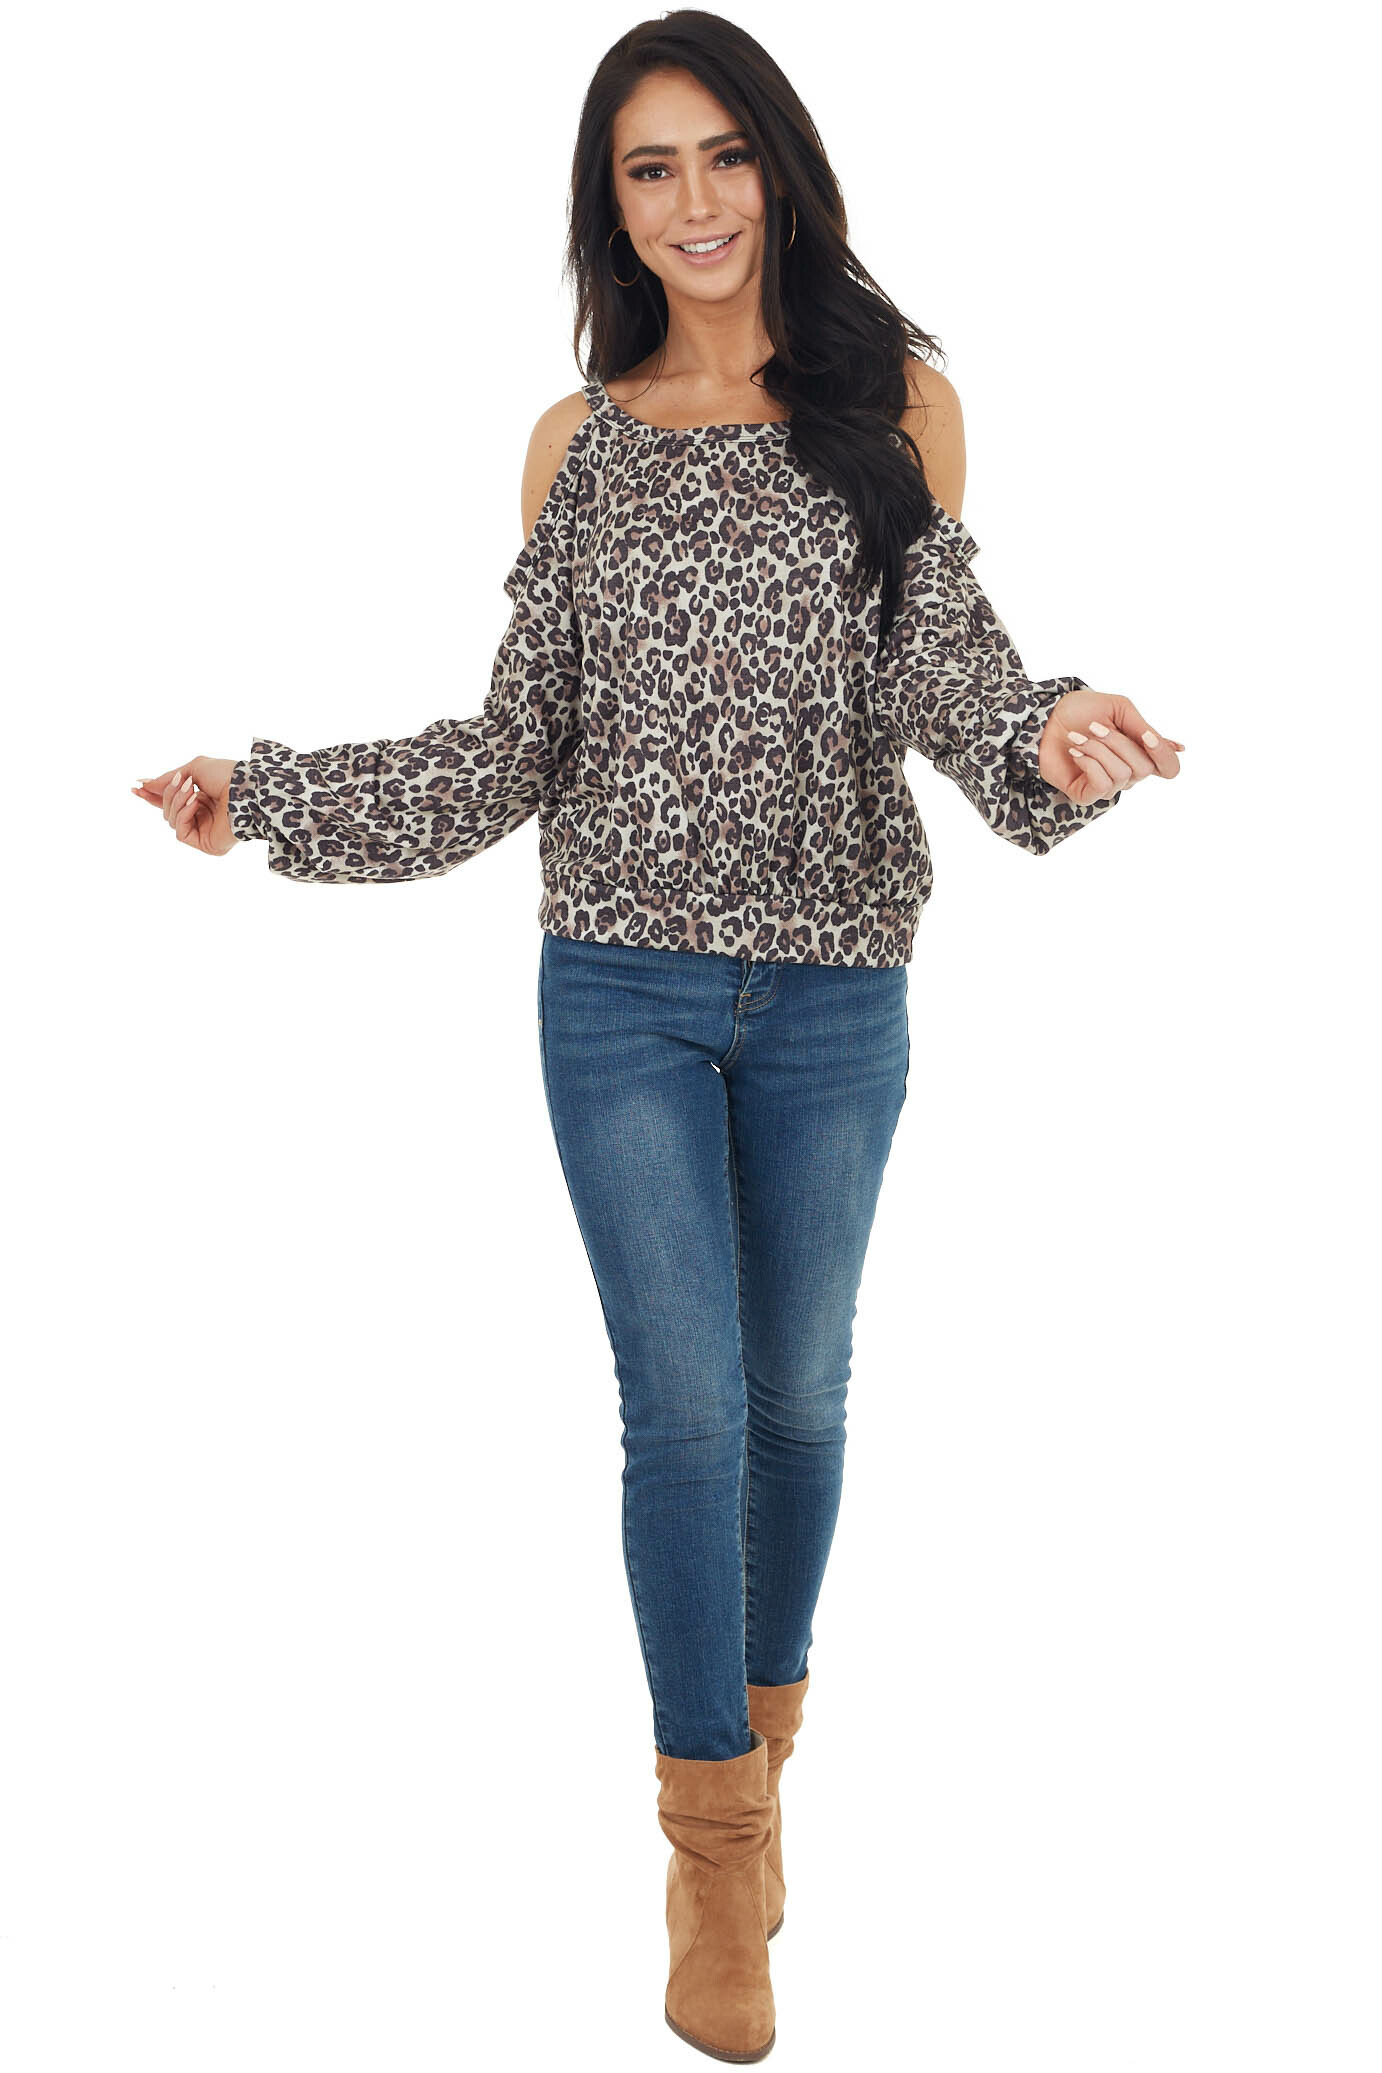 Oatmeal Leopard Print Long Sleeve Top with Cold Shoulders